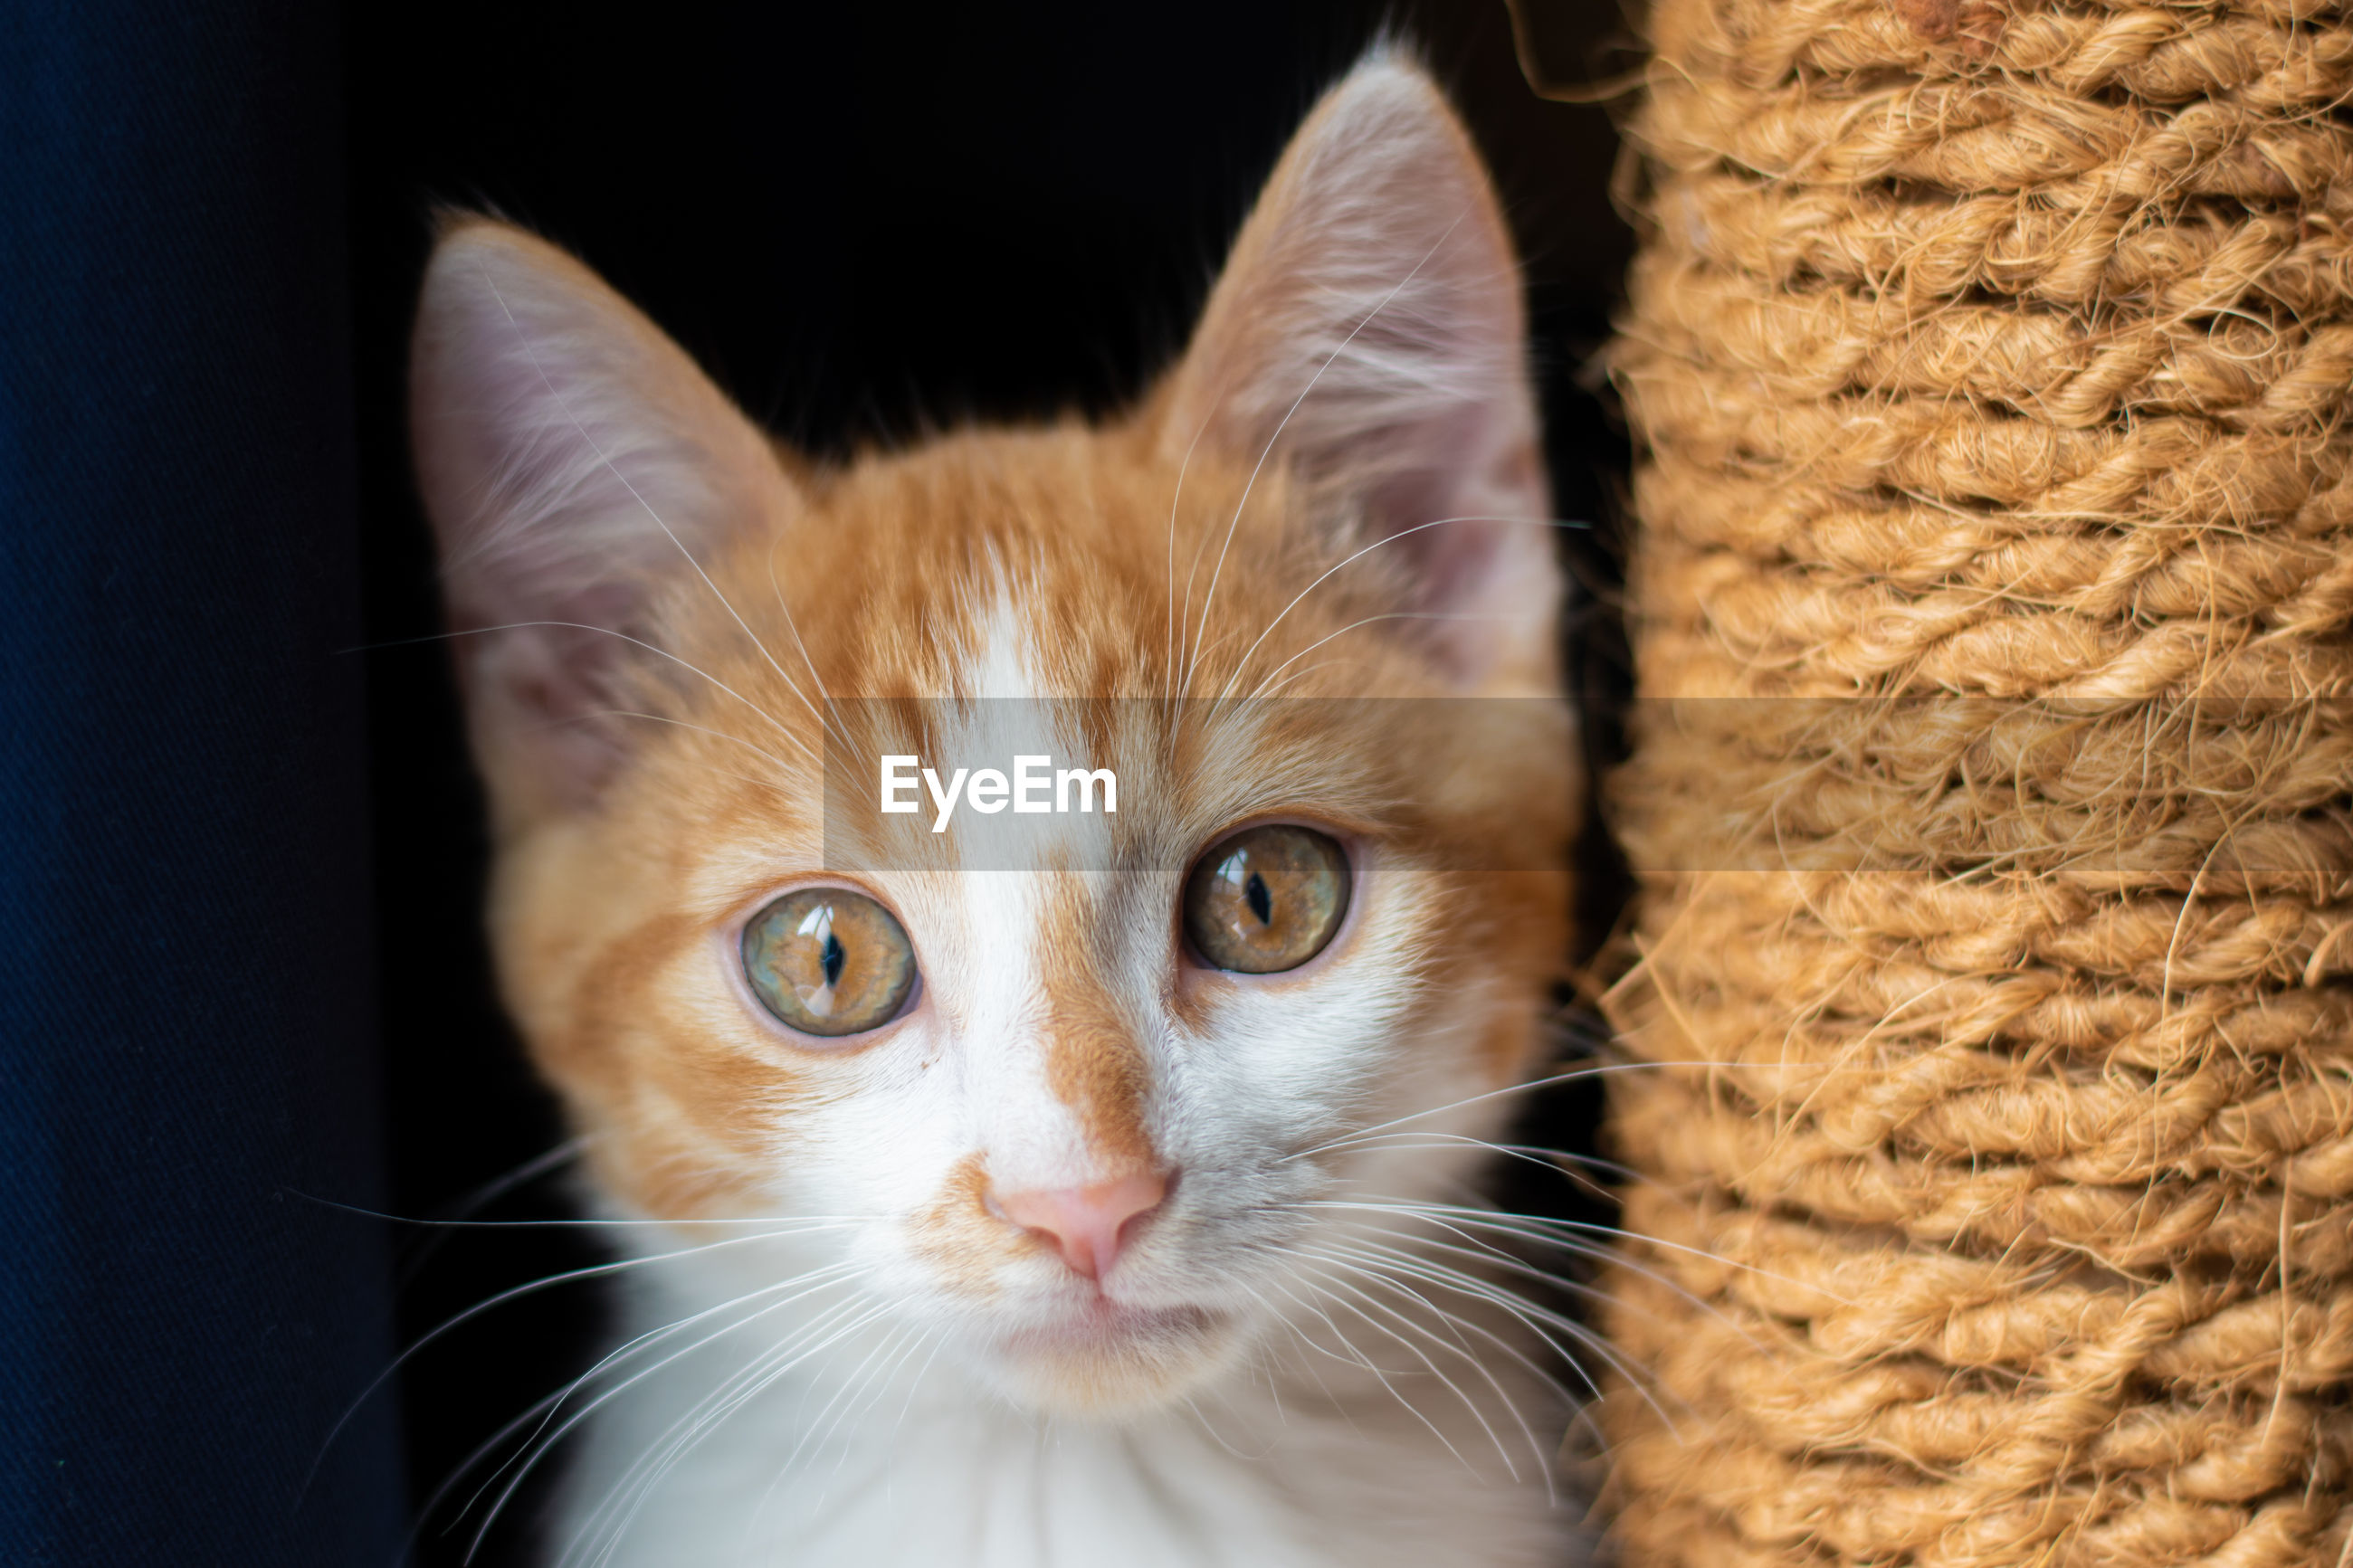 CLOSE-UP PORTRAIT OF CAT WITH EYES AND INDOORS